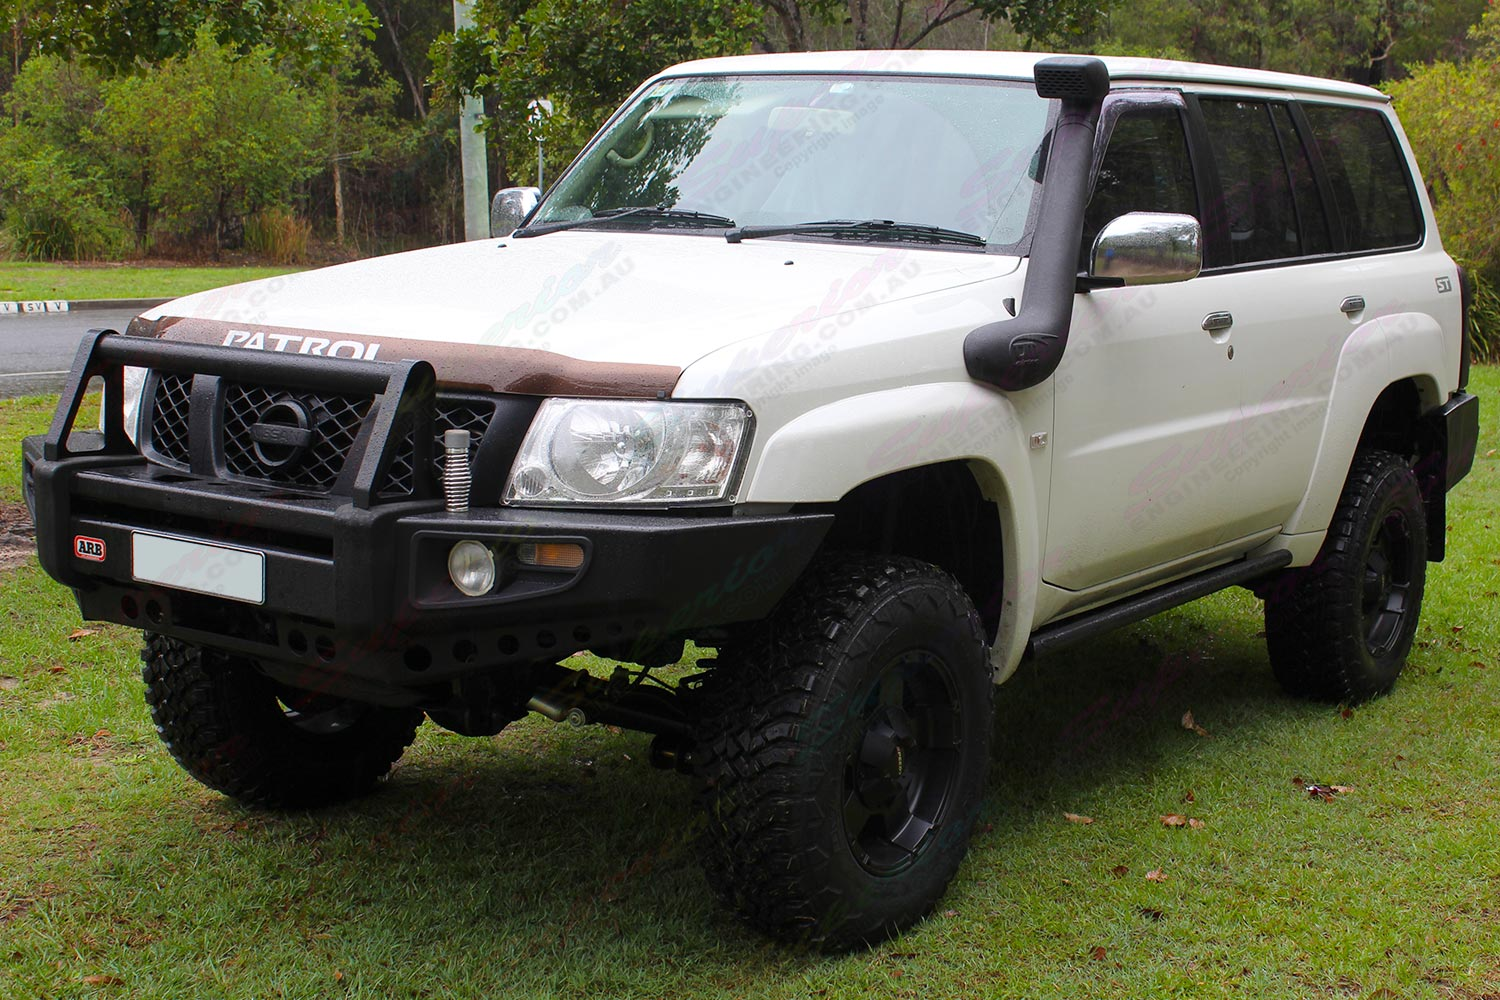 Nissan Patrol GU Wagon fitted with a 3 inch Superior Lift kit and Airbag Man suspension kit